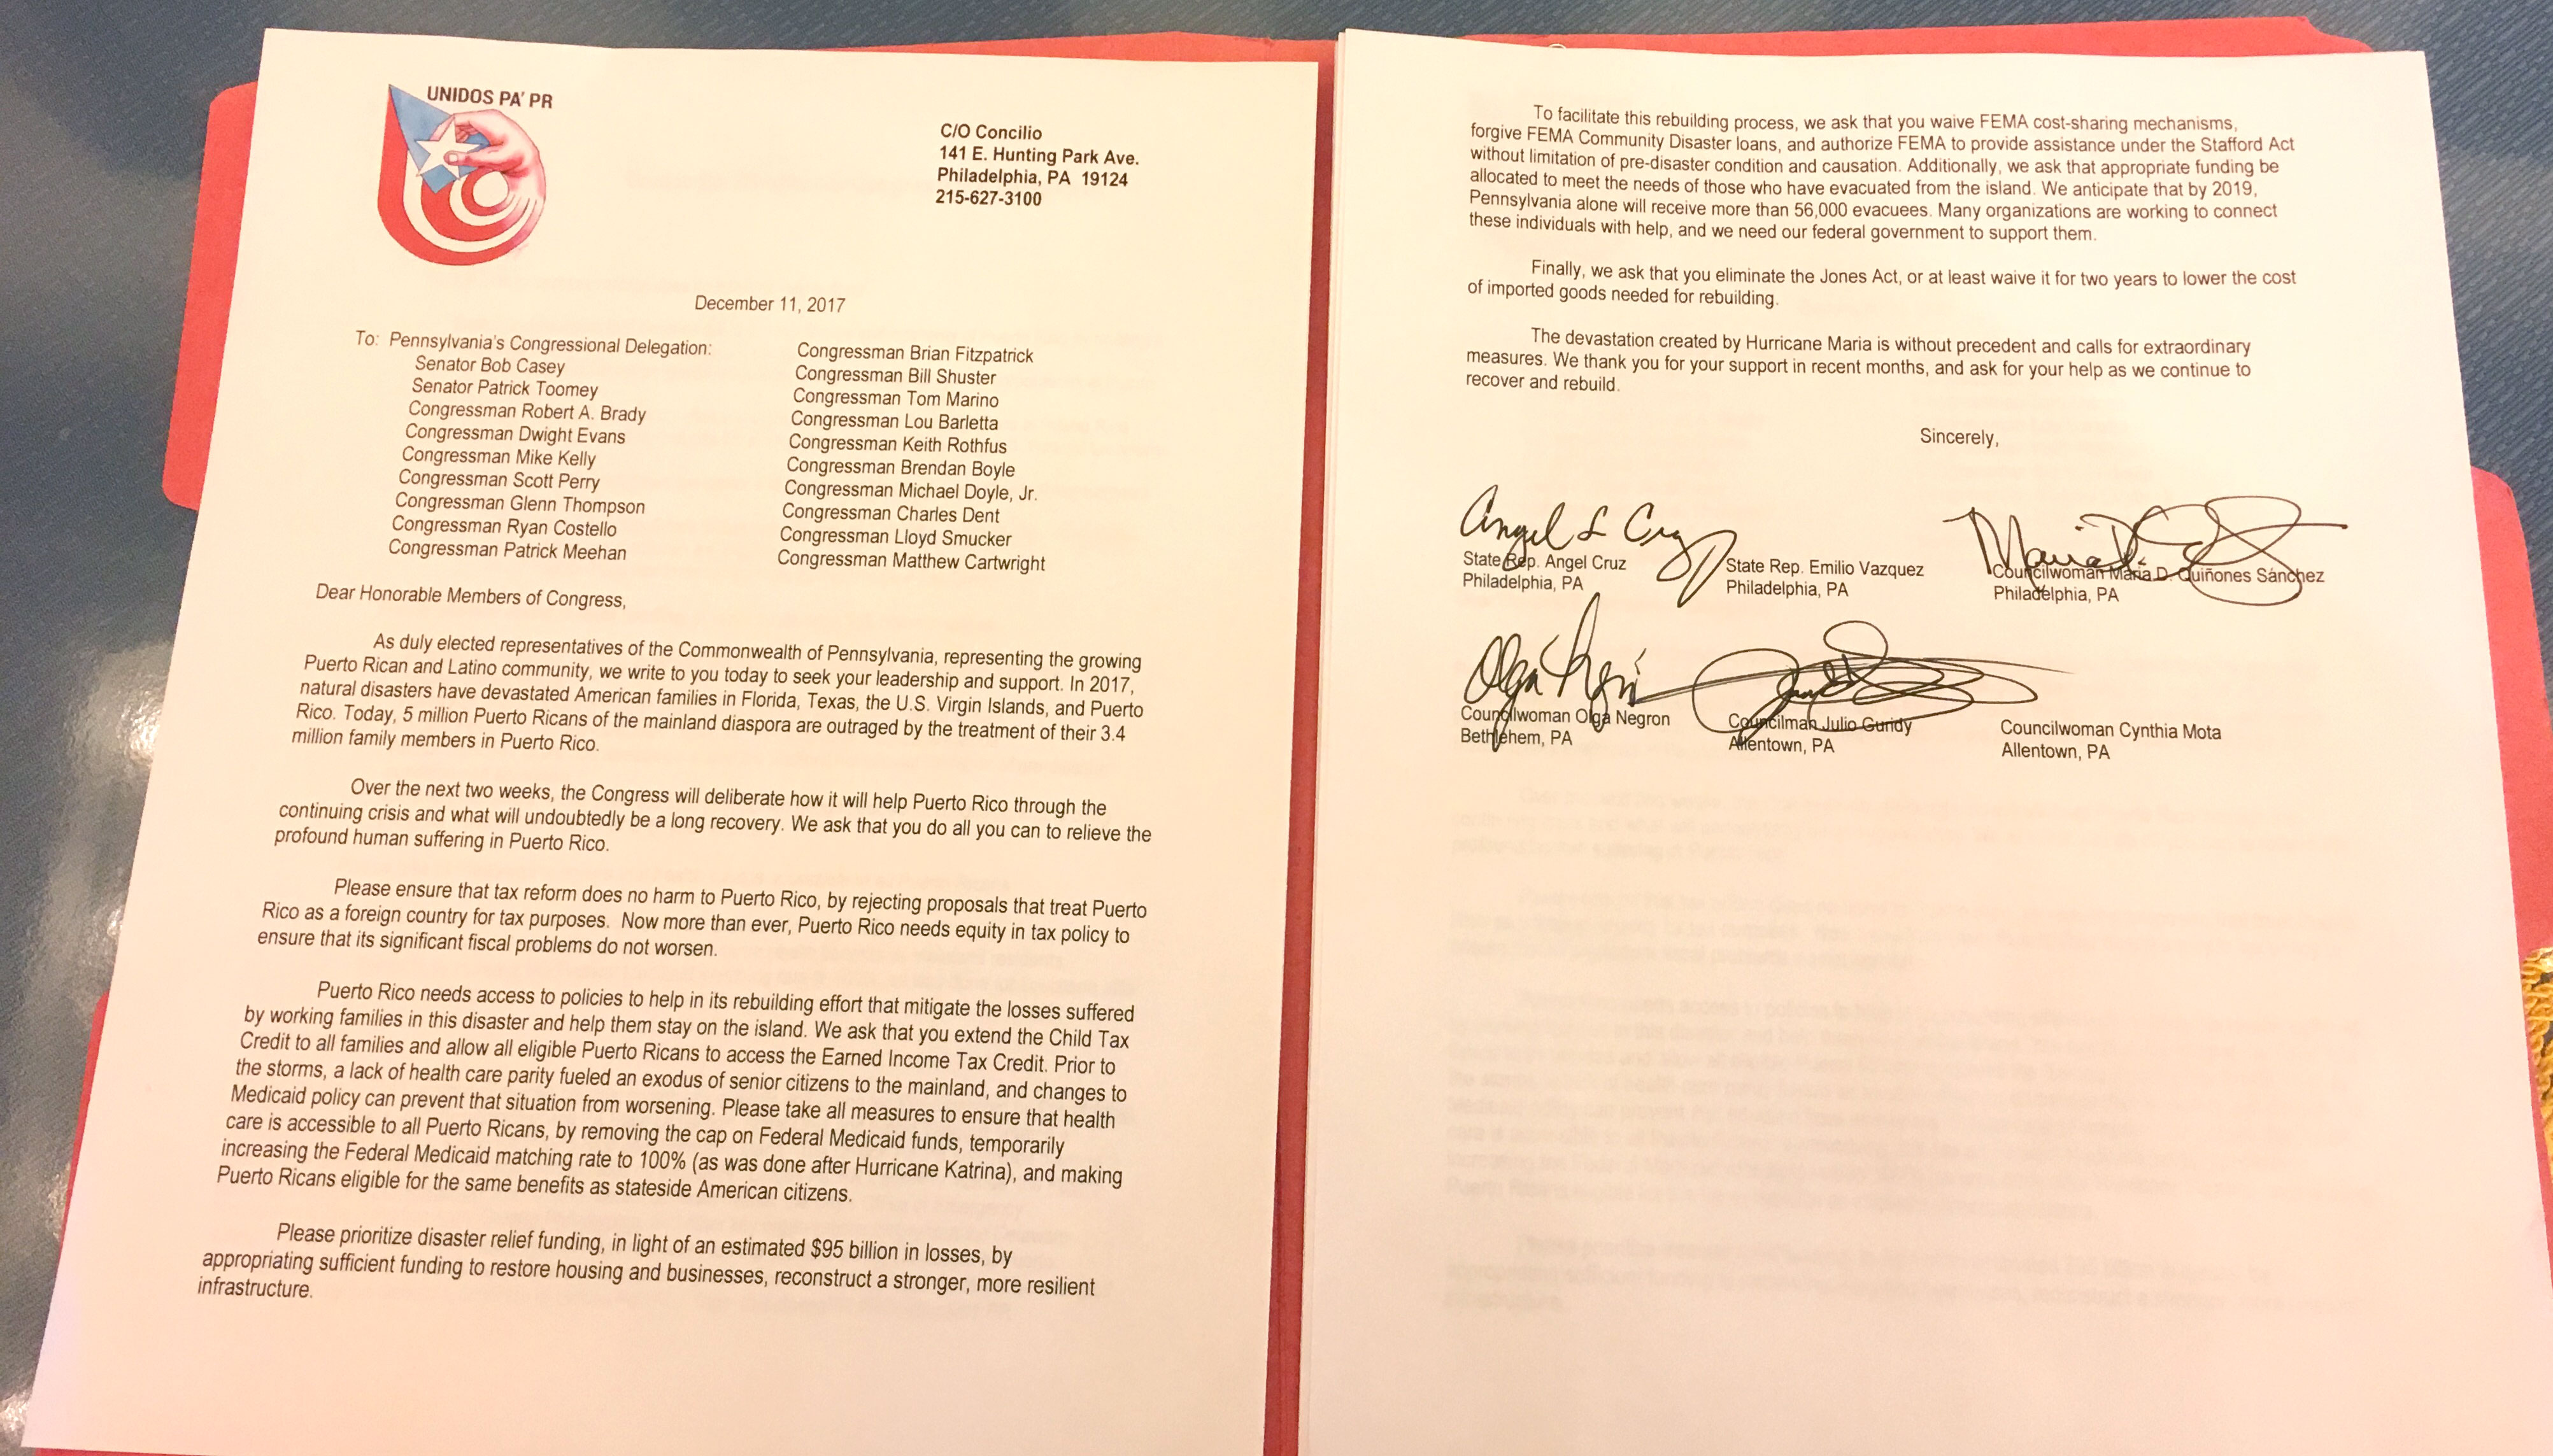 Unidos Pa'PR Letter to Pennsylvania's Congressional Delegation.